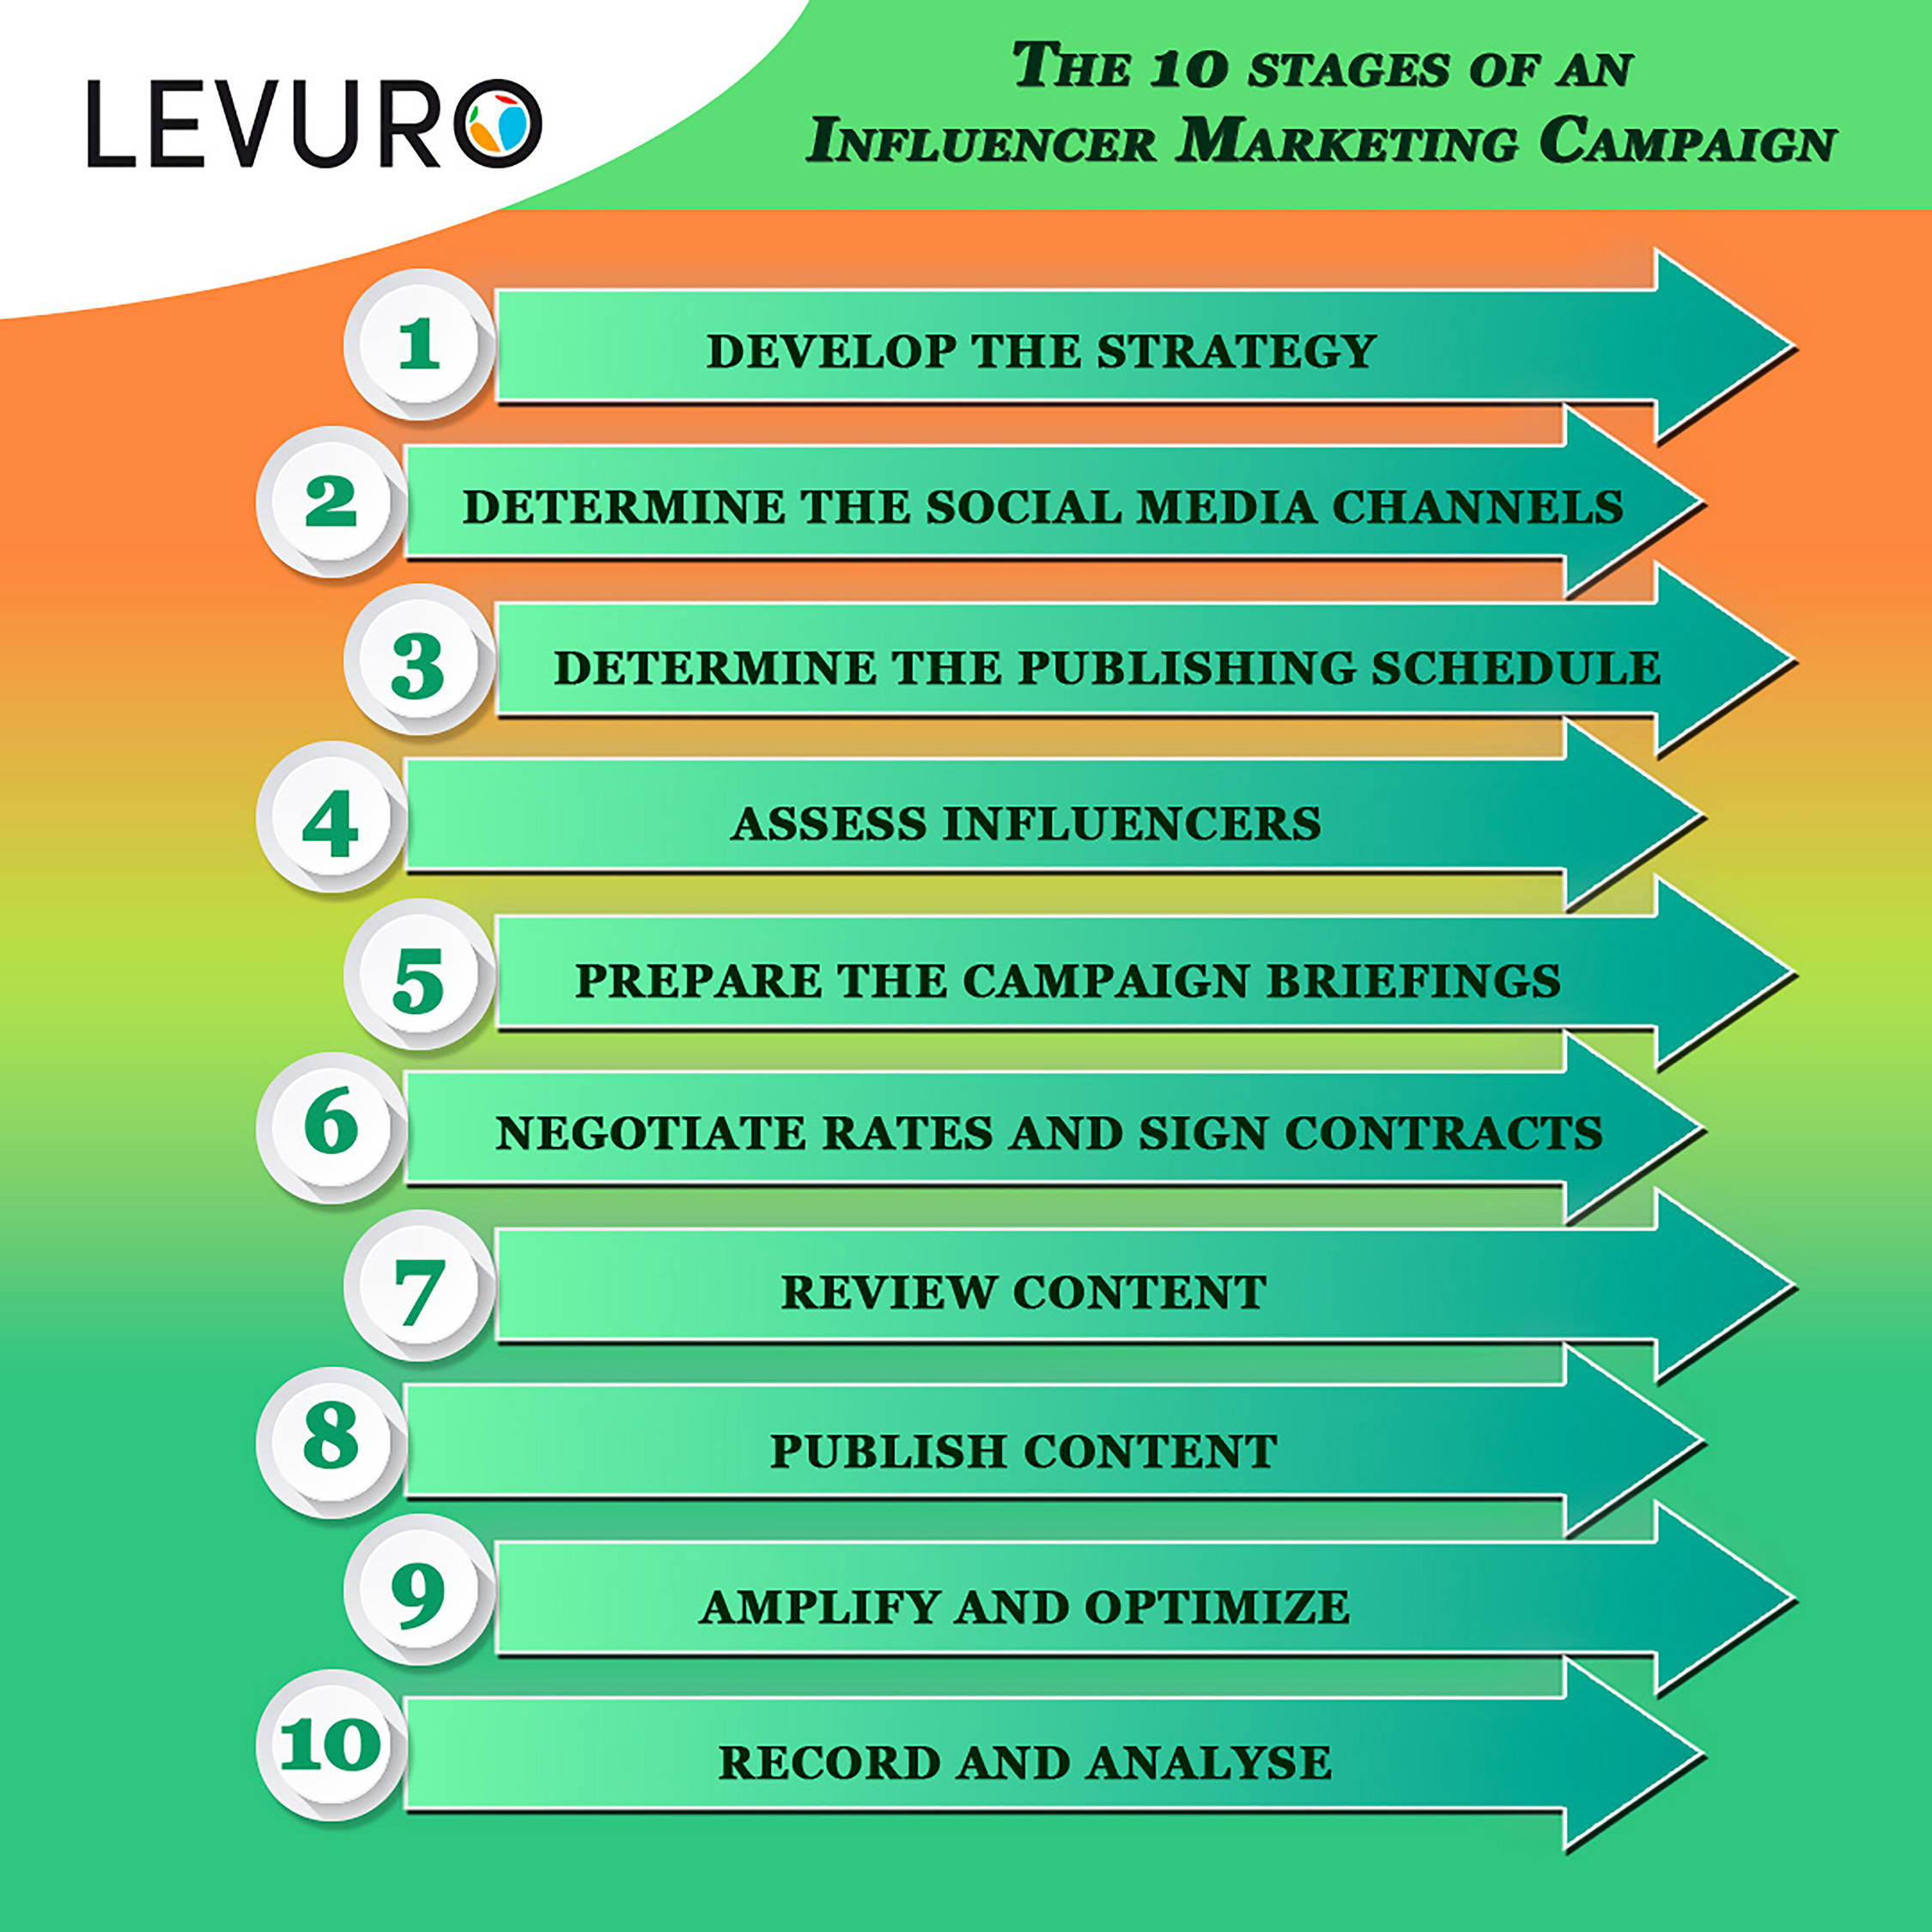 INFLUENCER MARKETING CAMPAIGN STAGES - LEVURO ENGAGE